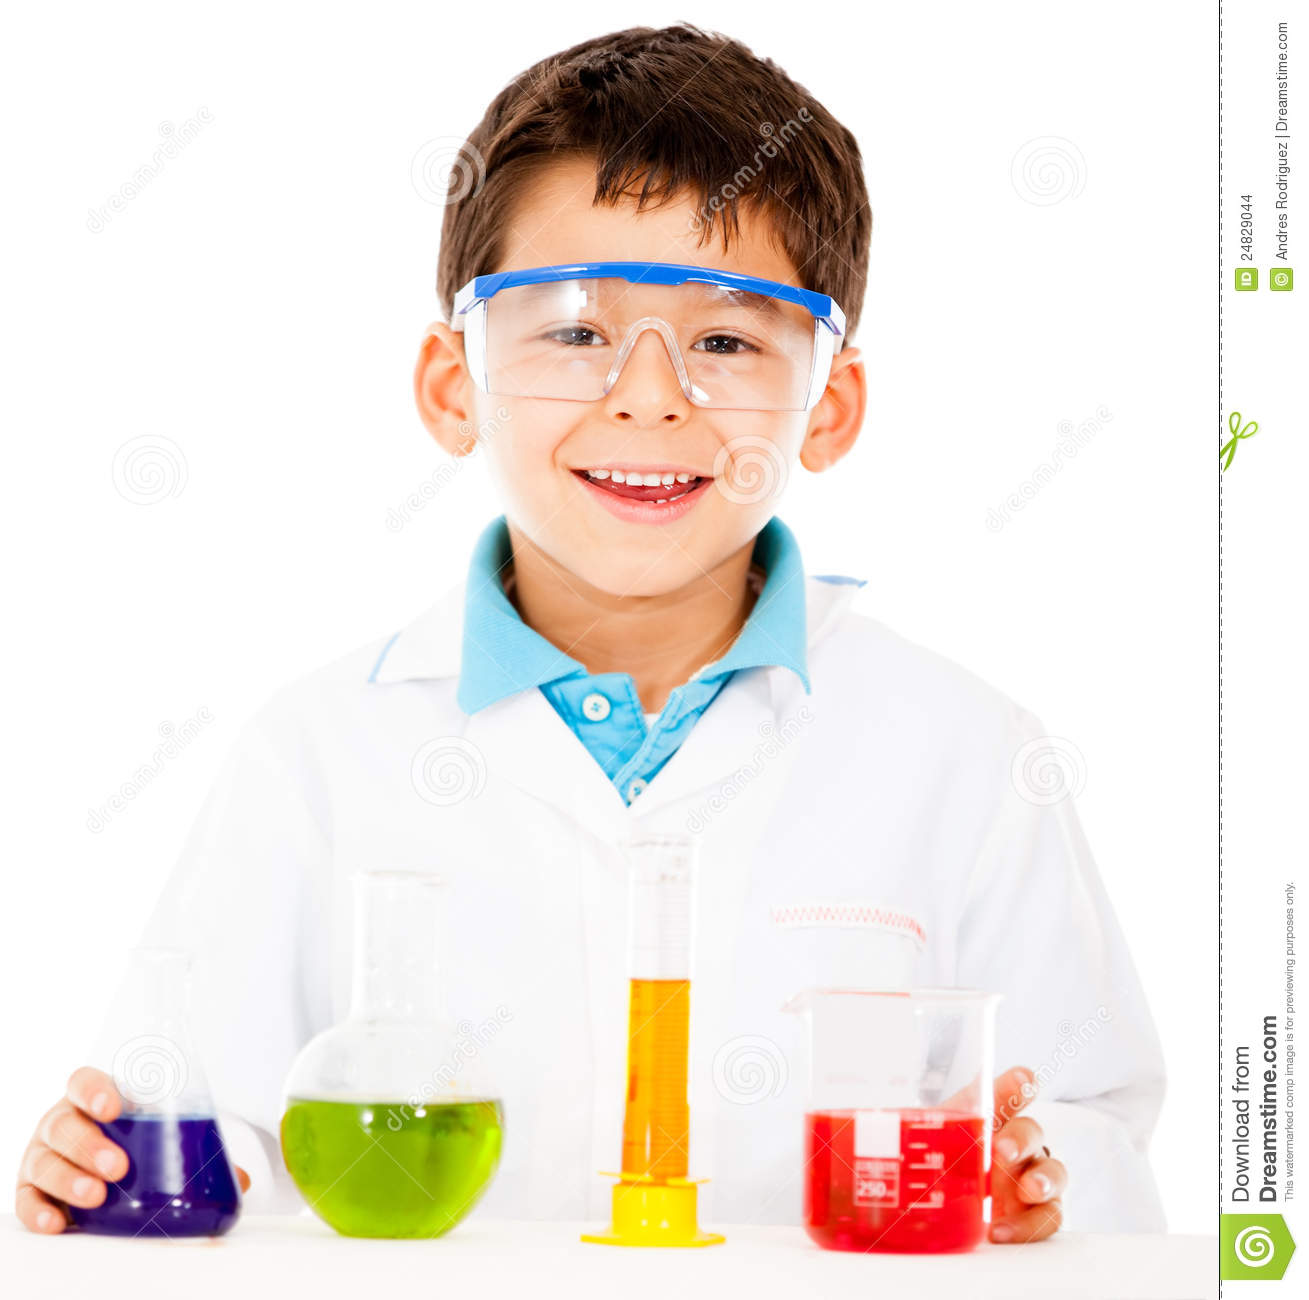 Scientist boy with test tubes - isolated over a white background.